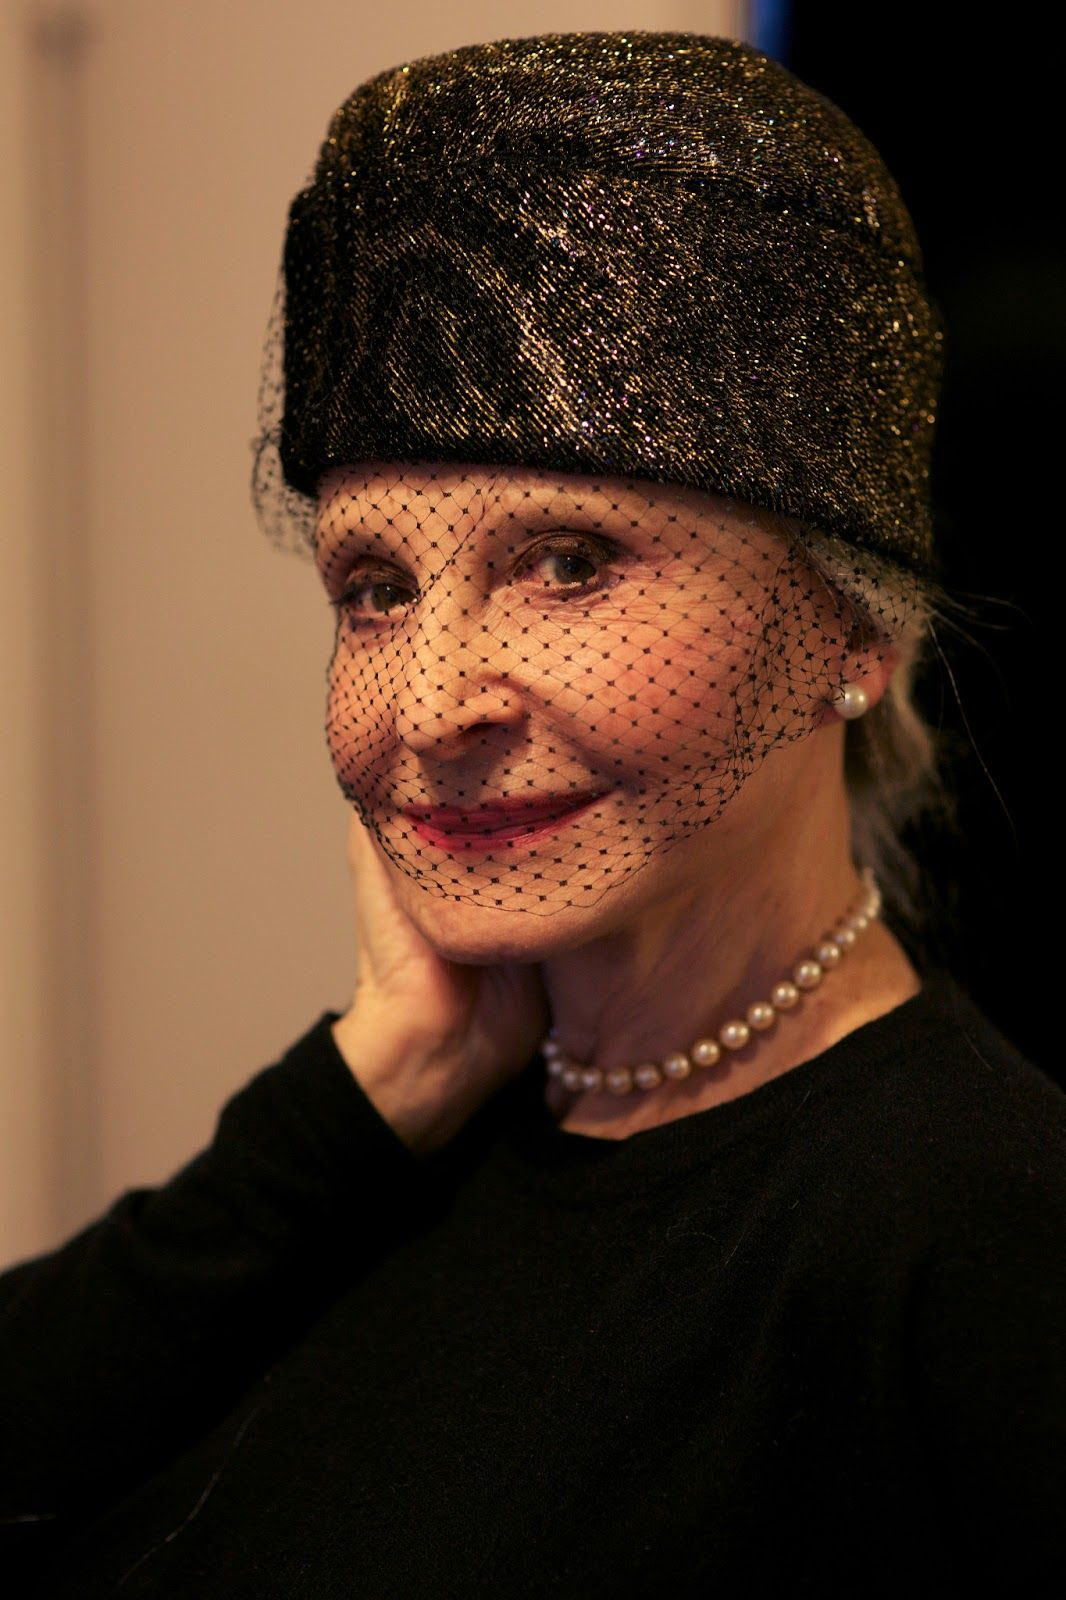 80-year-old Joyce Carpati...proof that wearing a hat makes you FABULOUS!!!